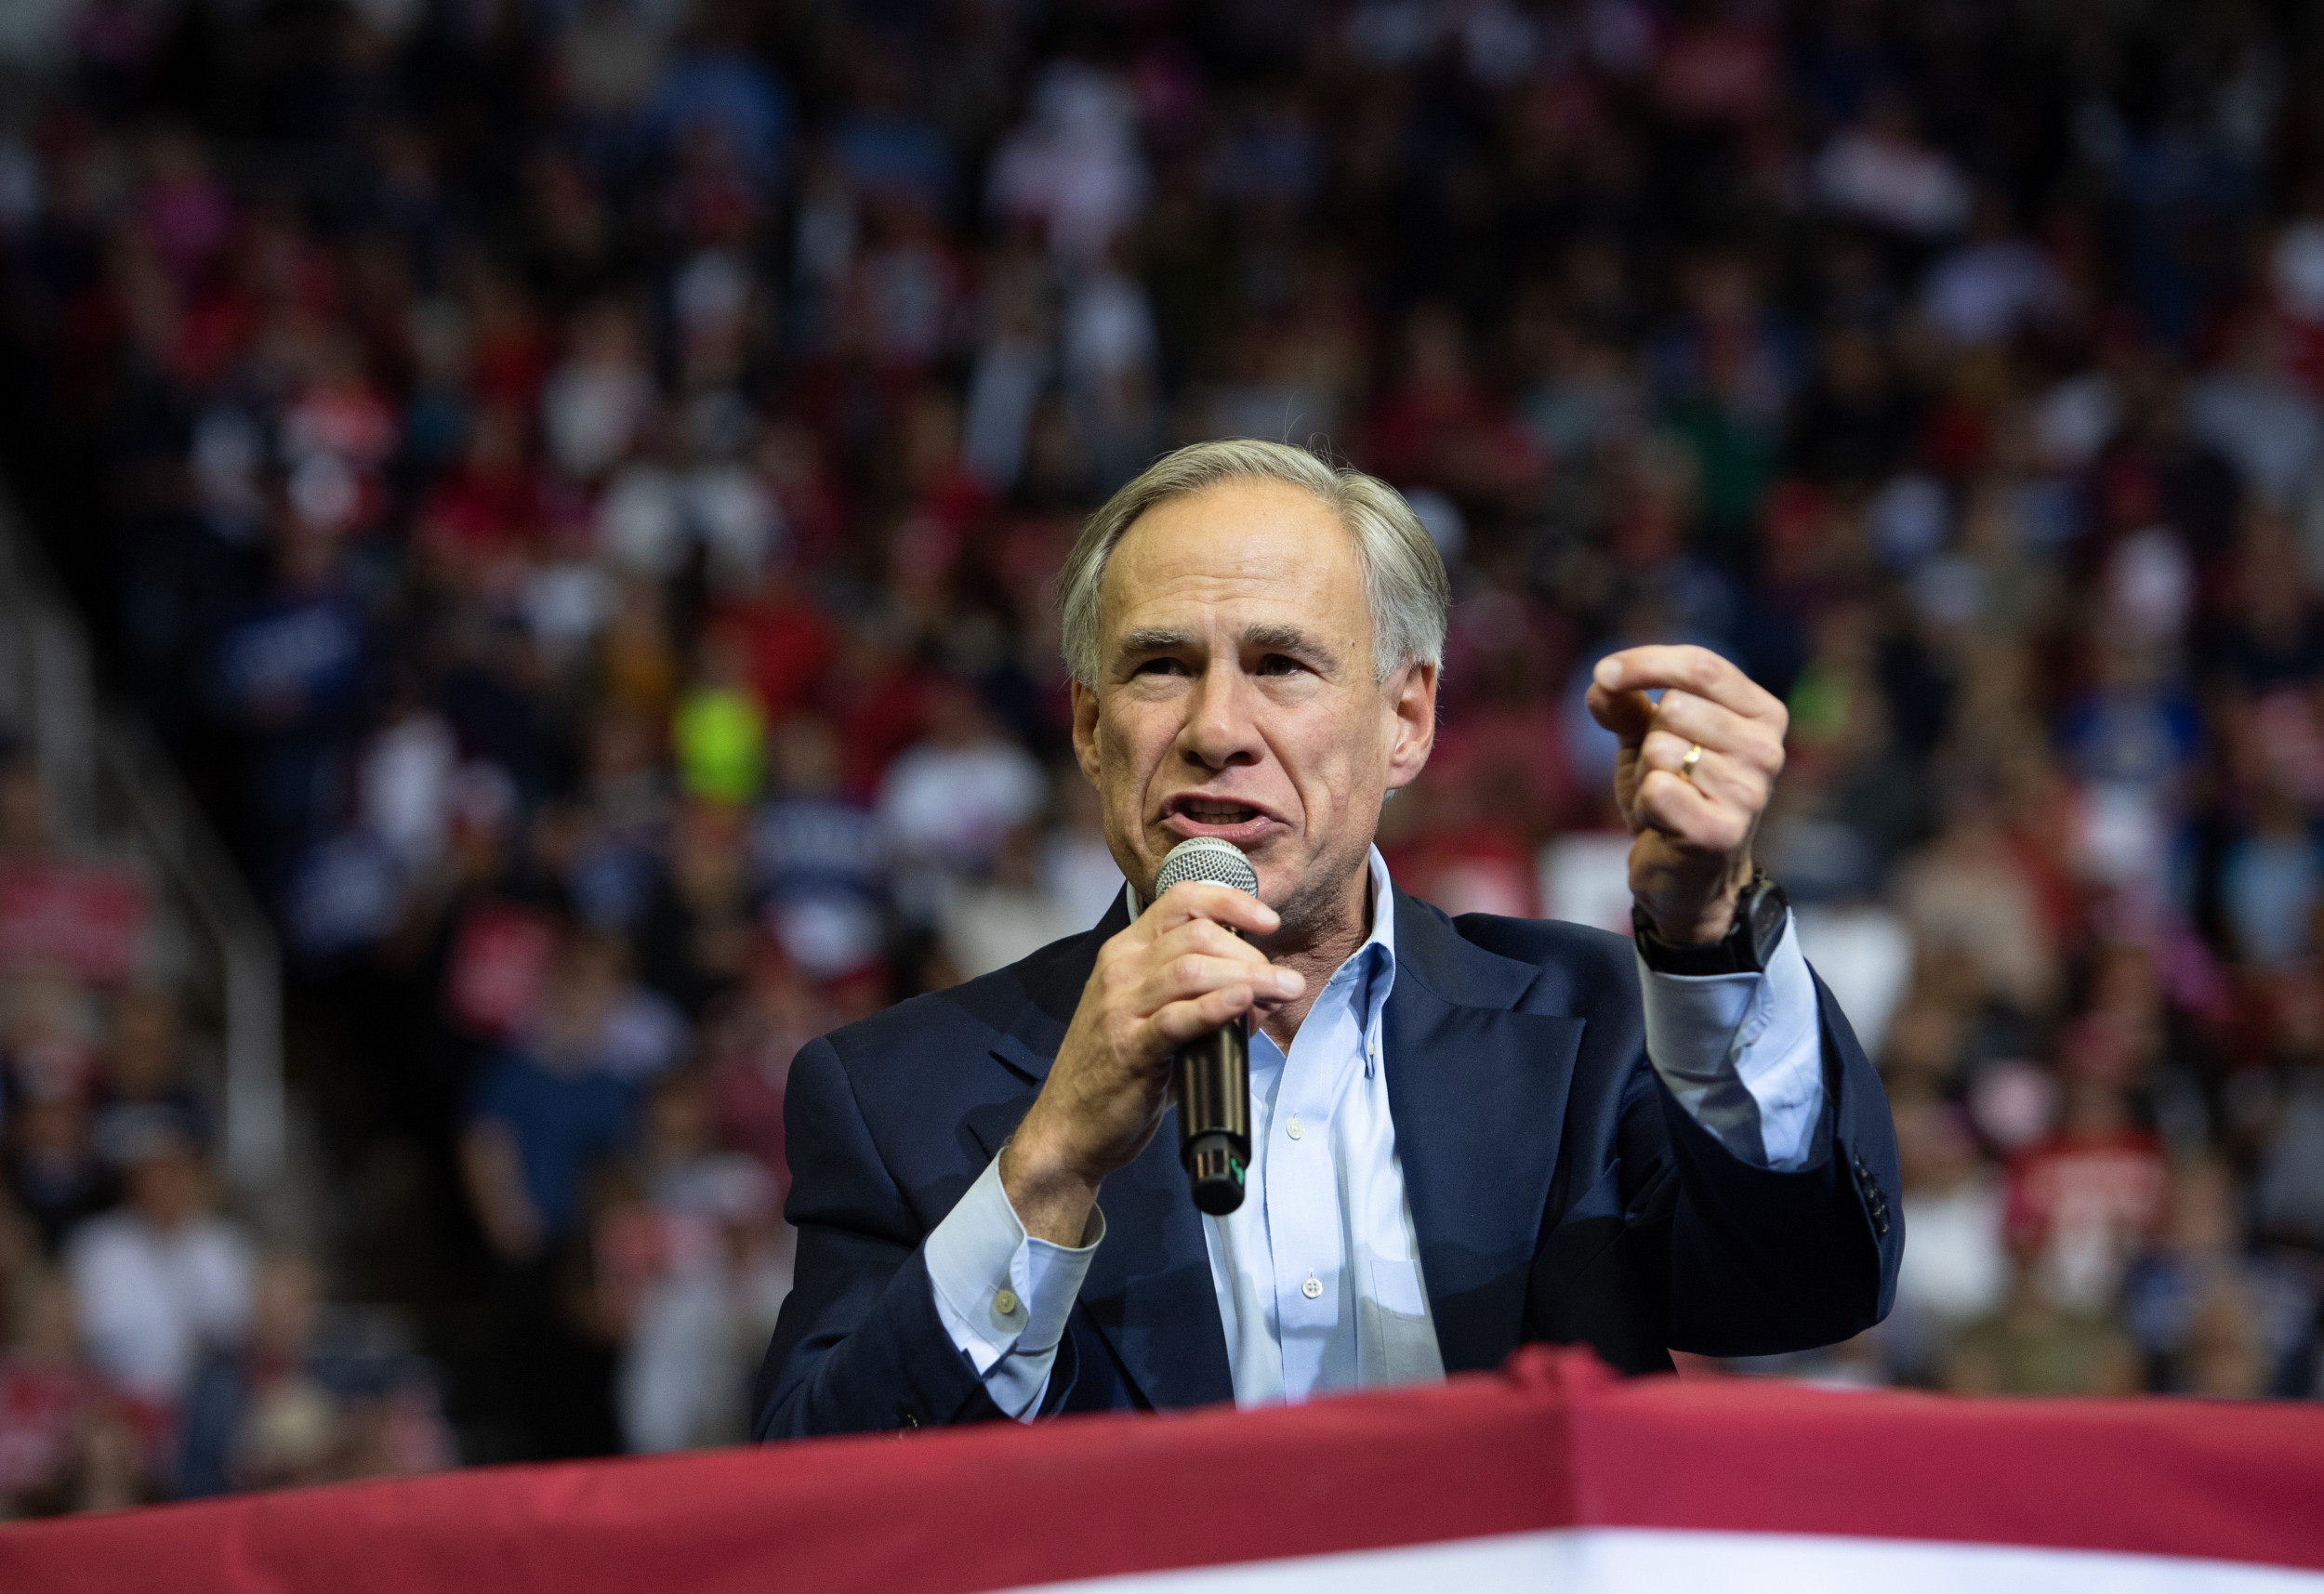 At least 12 Texas counties won't enforce governor's face mask mandate